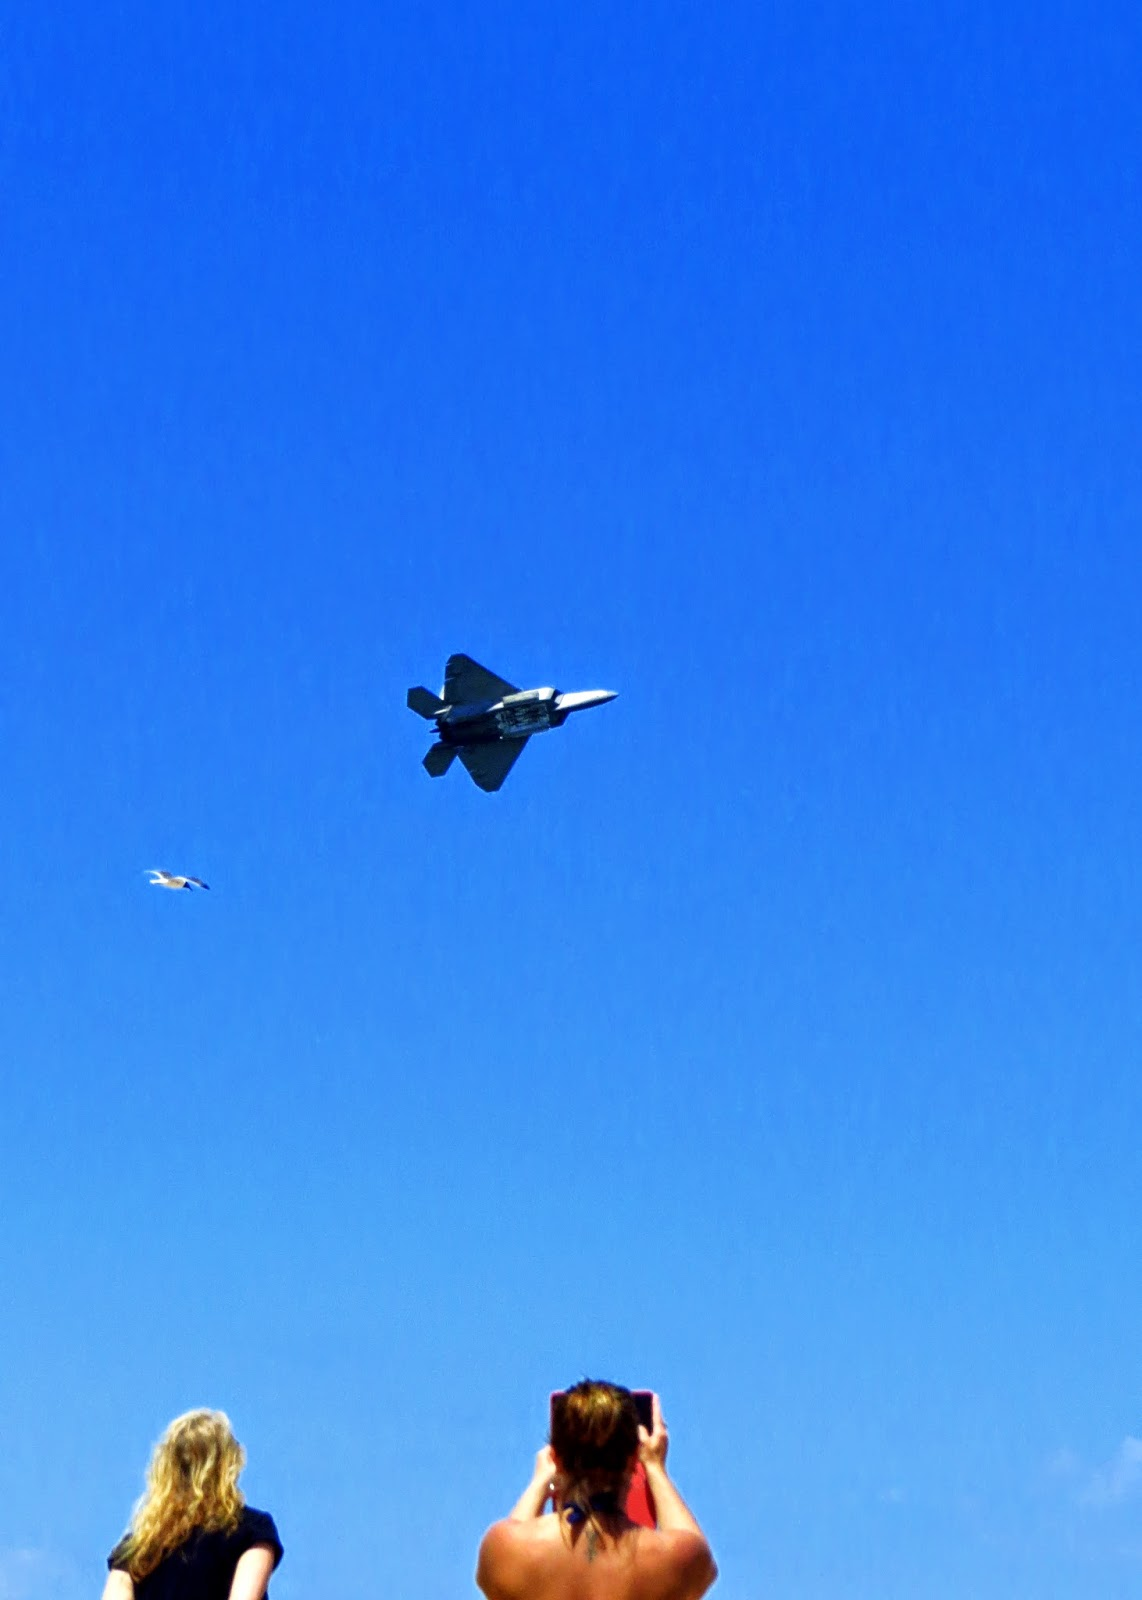 raptor, air show, air force, planes, jets